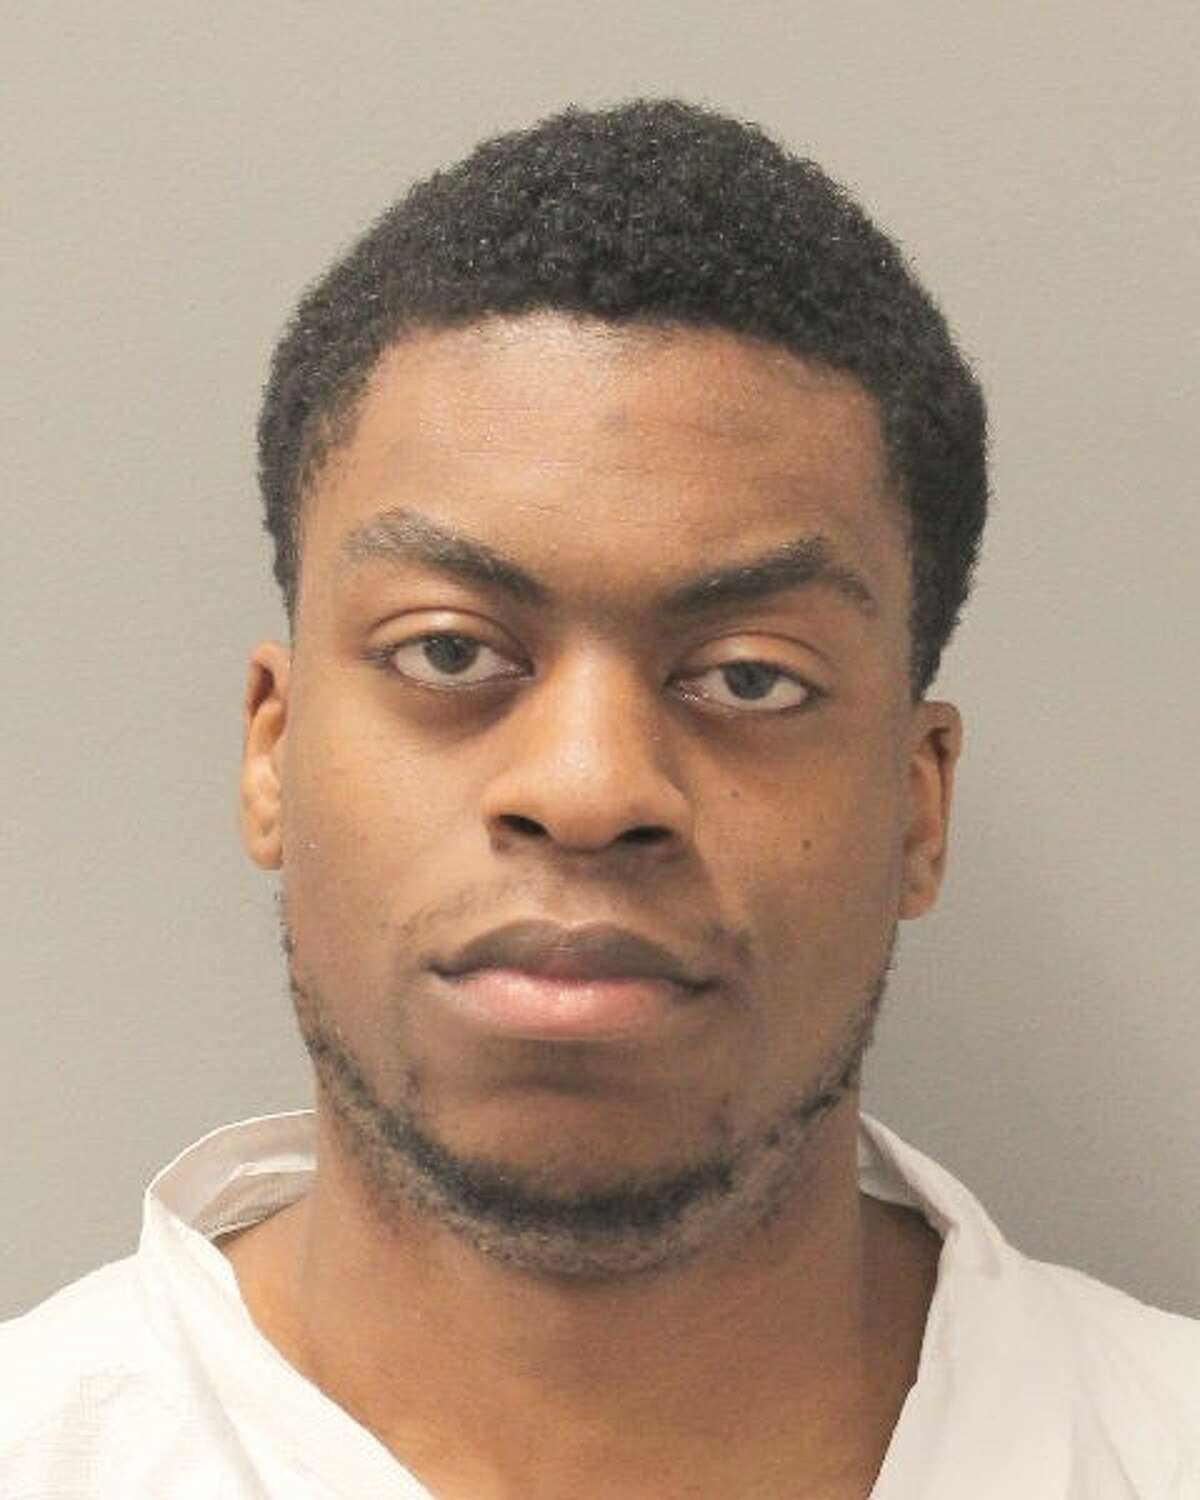 Jonte L. Grant was booked into the Harris County Jail on a $75,000 bond.